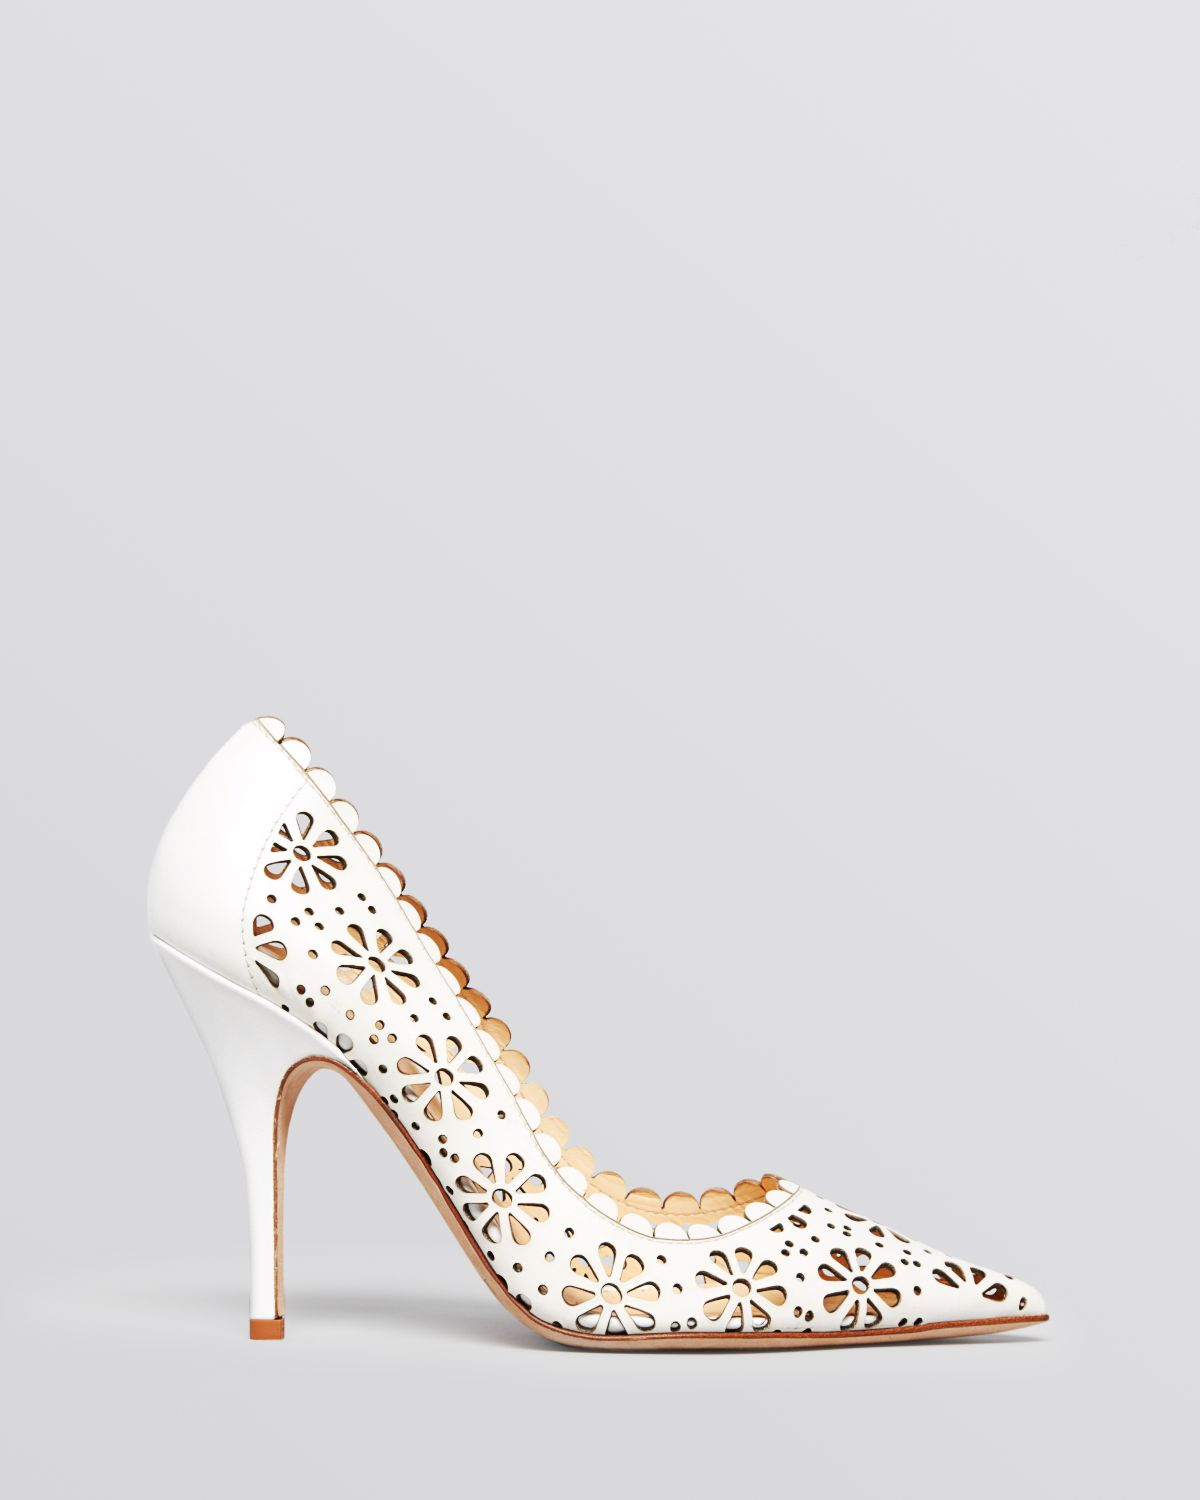 a8a89a722973 Lyst - Kate Spade Pointed Toe Pumps - Lana High Heel in White